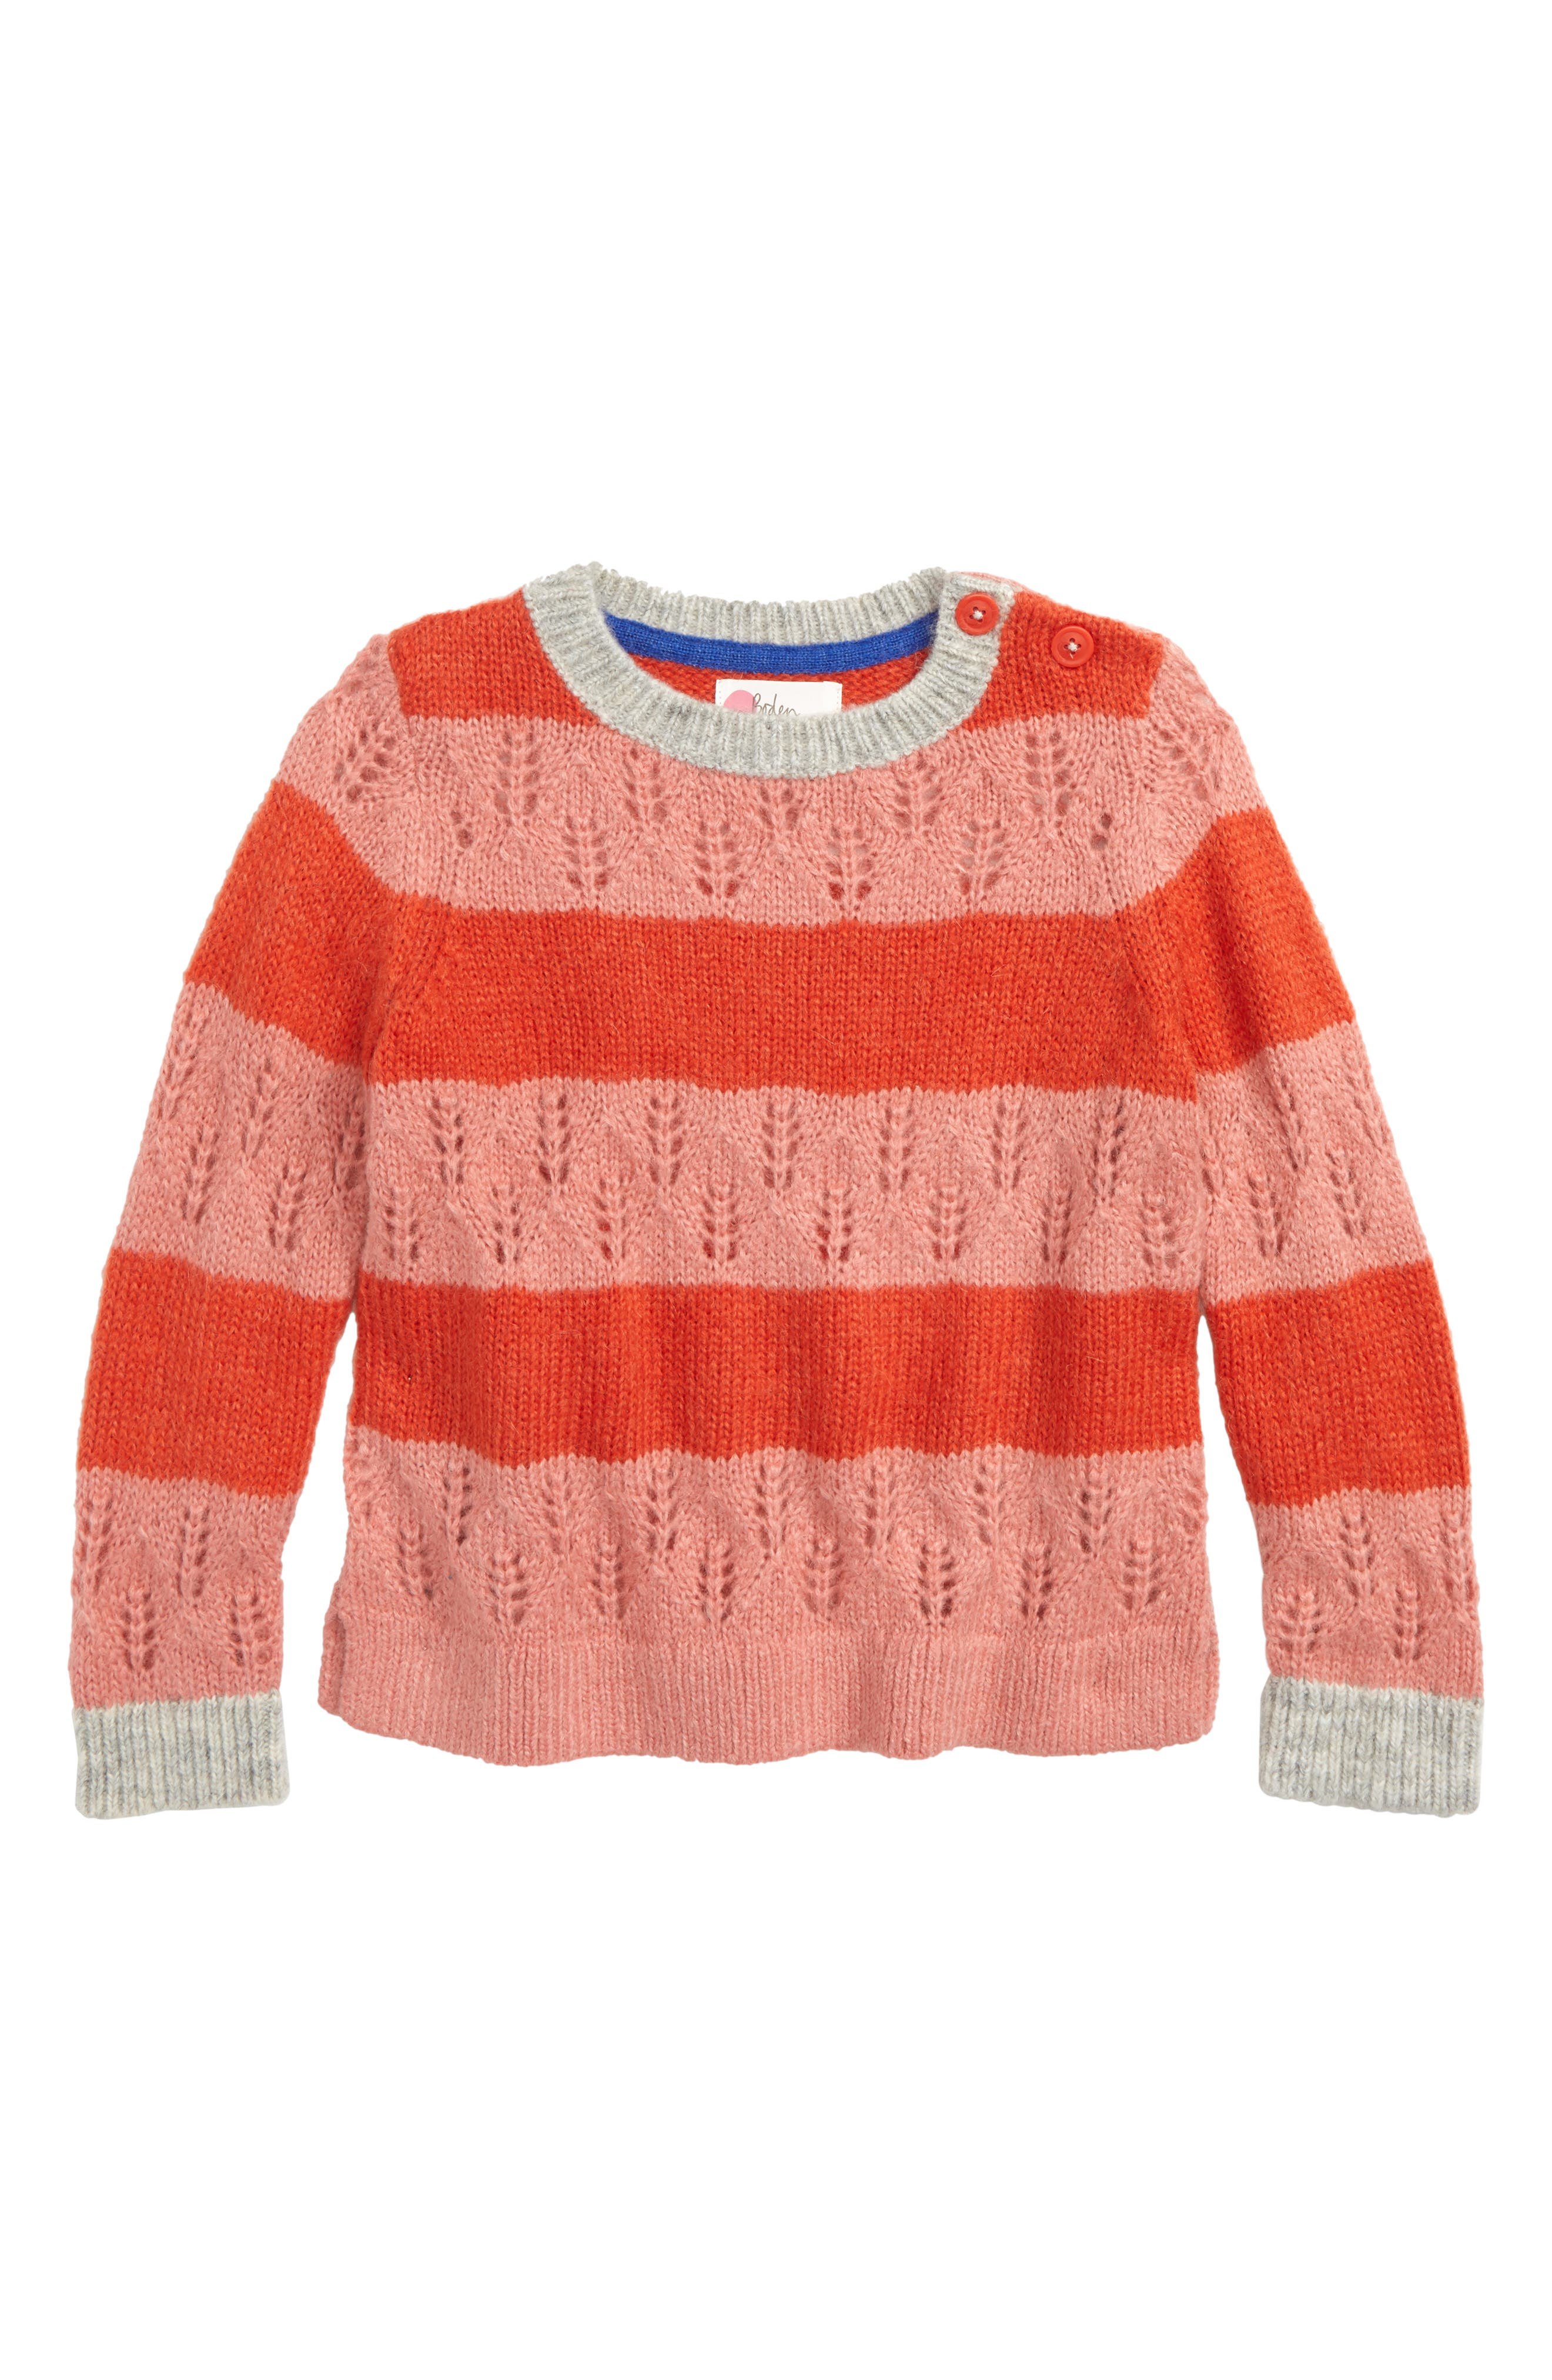 Stripe Knit Sweater,                         Main,                         color, POPPY RED/ FORMICA PINK